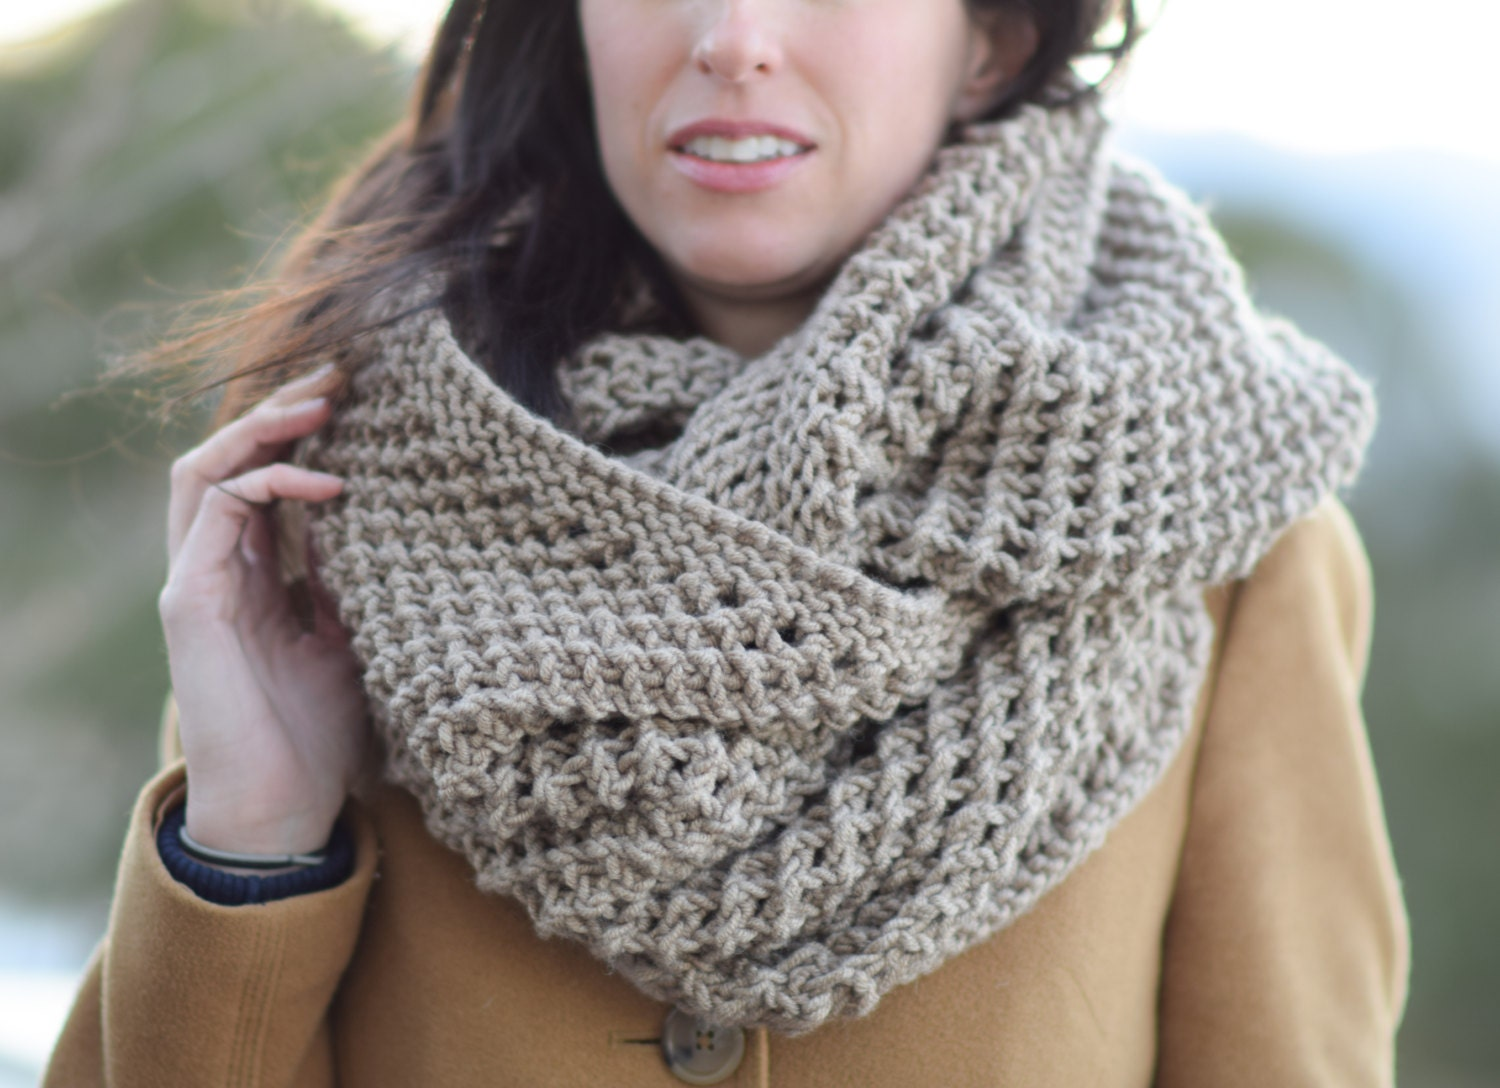 Knitting Pattern For Beanies : Big Knit Scarf Knit Infinity Scarf Pattern Bulky Knitting